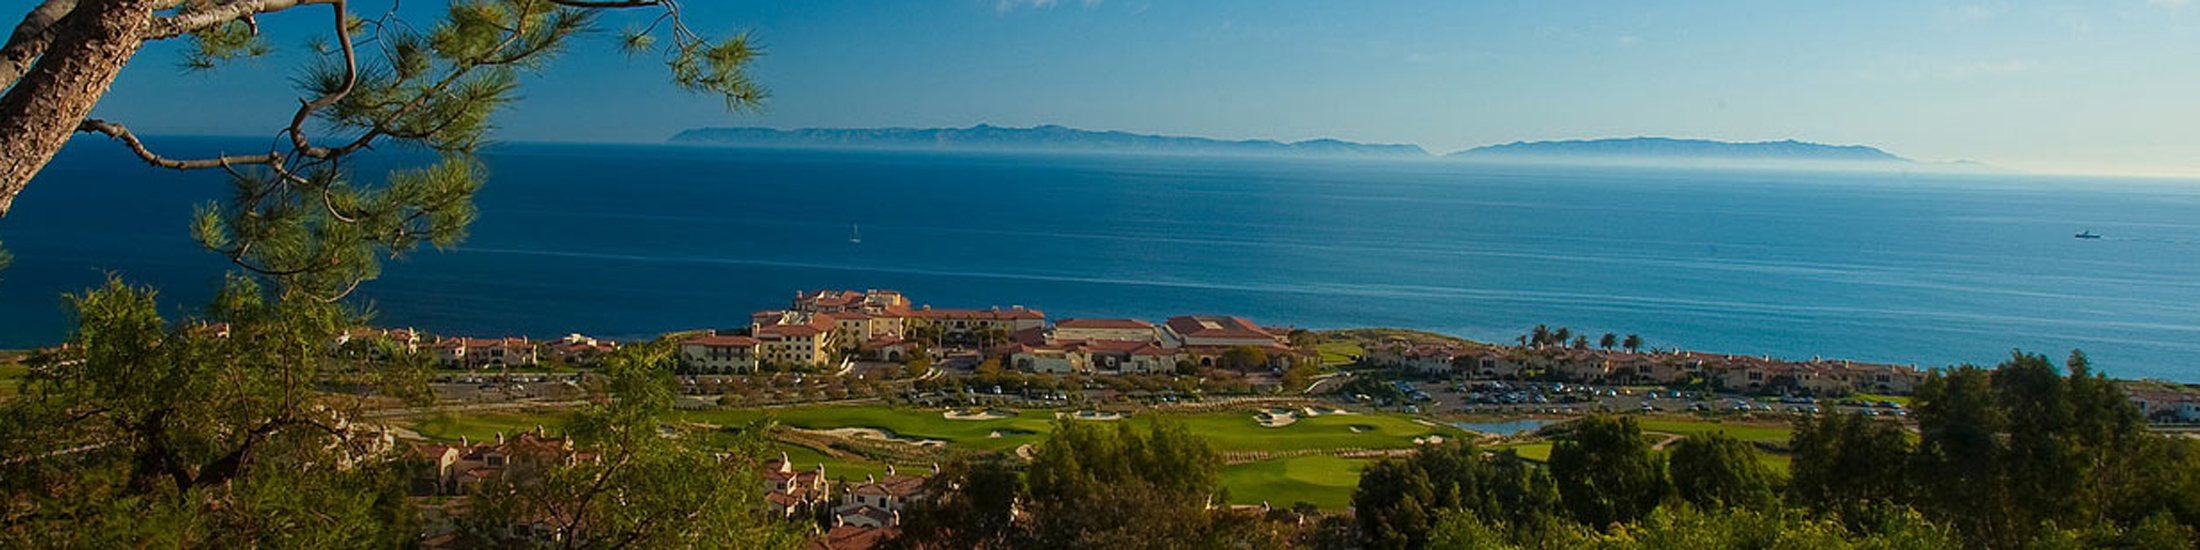 Terranea Resort Real Estate Homes For Sale